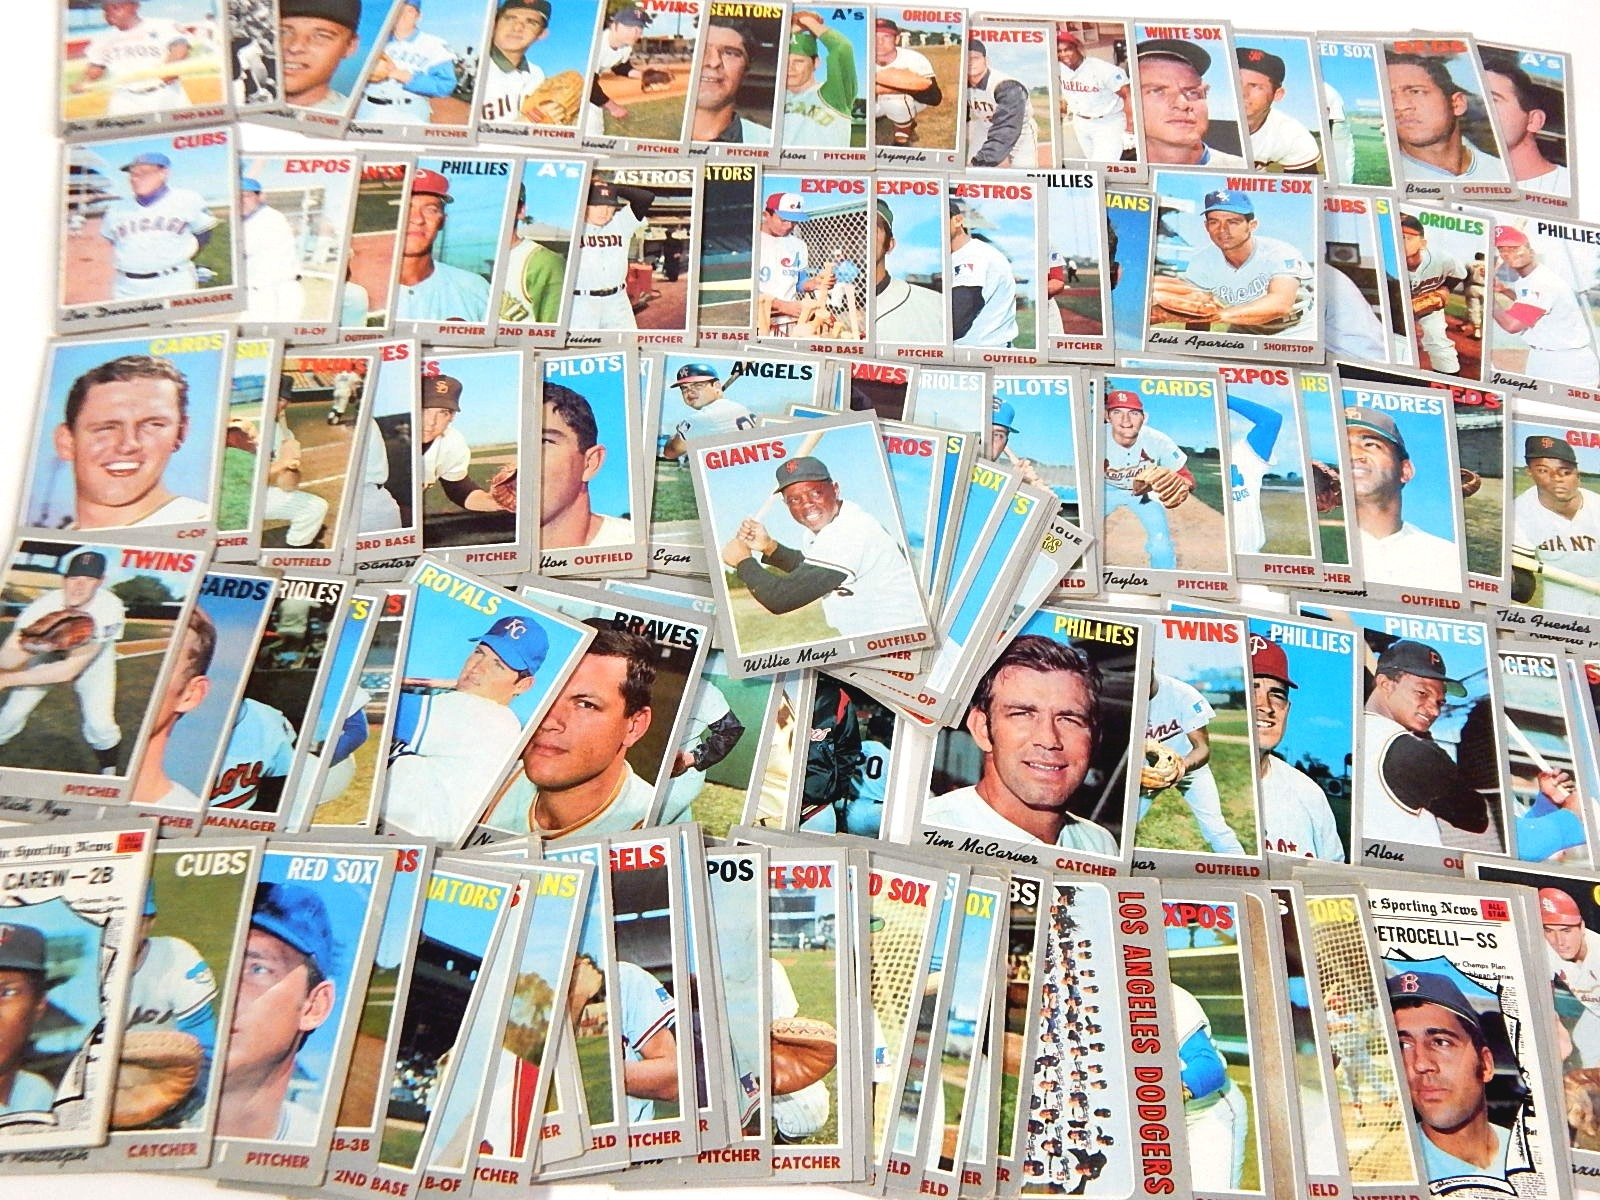 1970 Topps Baseball Cards with W. Mays #600, Morgan, Carew - Over 130 Ct.